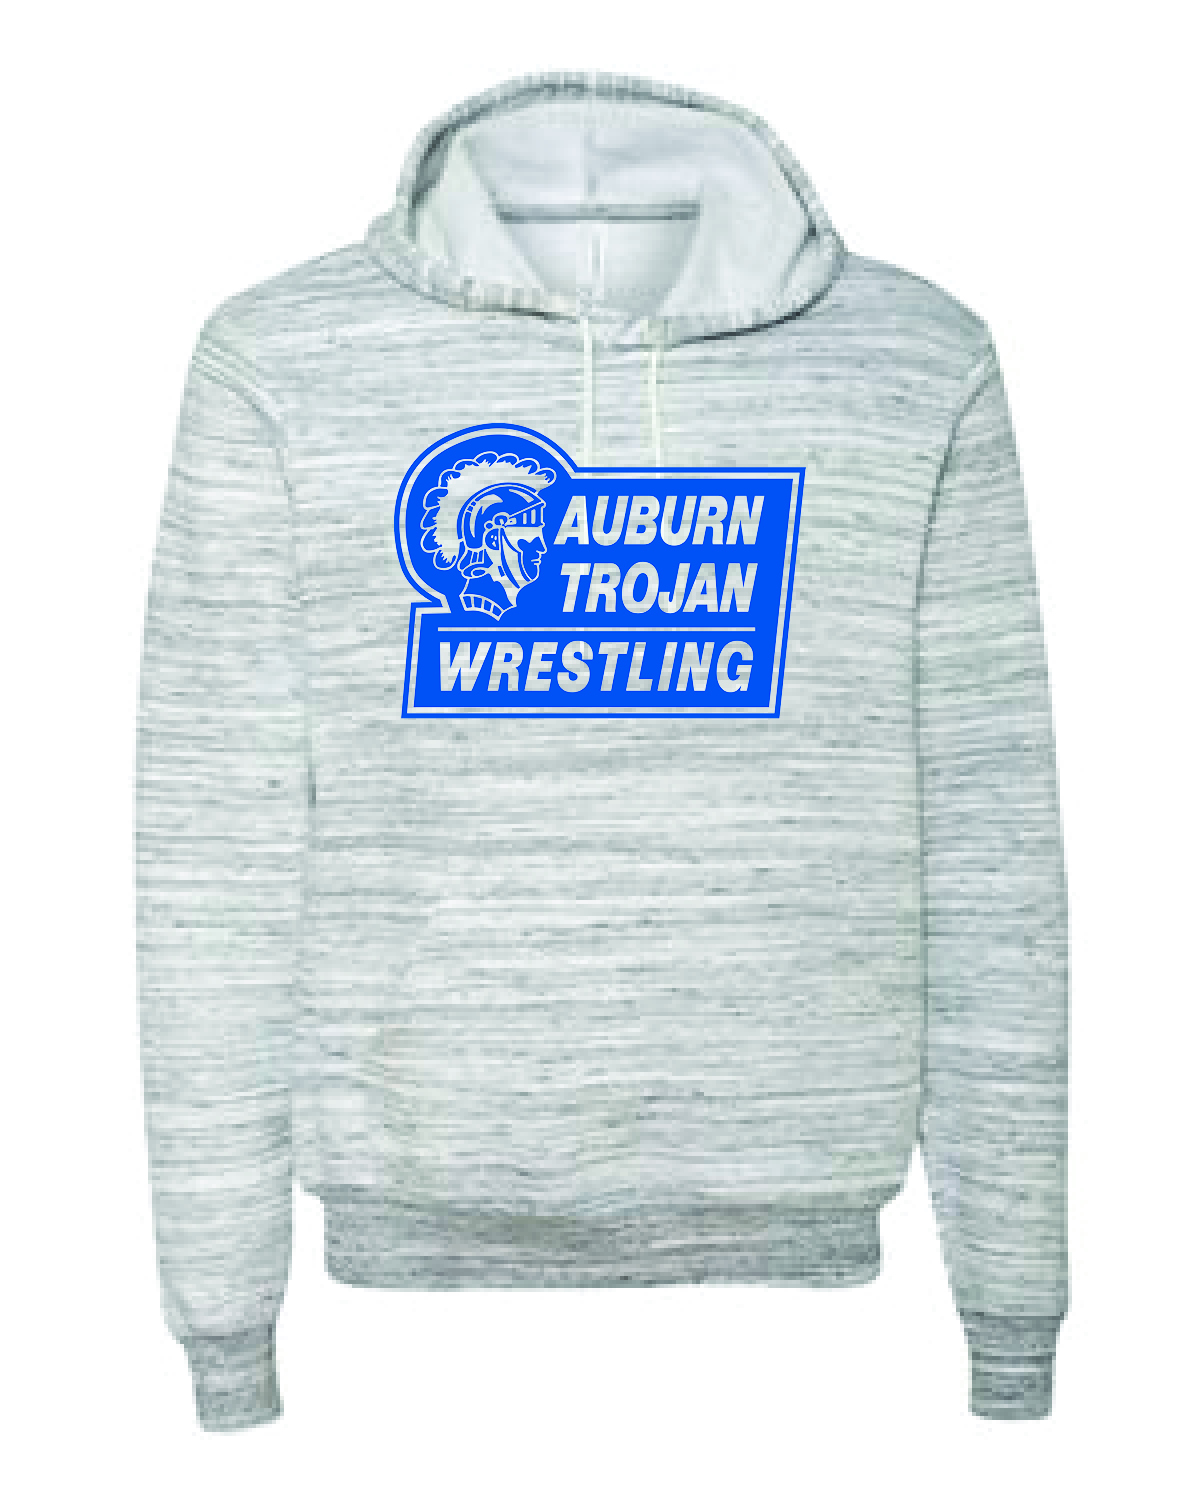 WRESTLING HOODIE - BELLA + CANVAS - Unisex Sponge Fleece- WOMENS